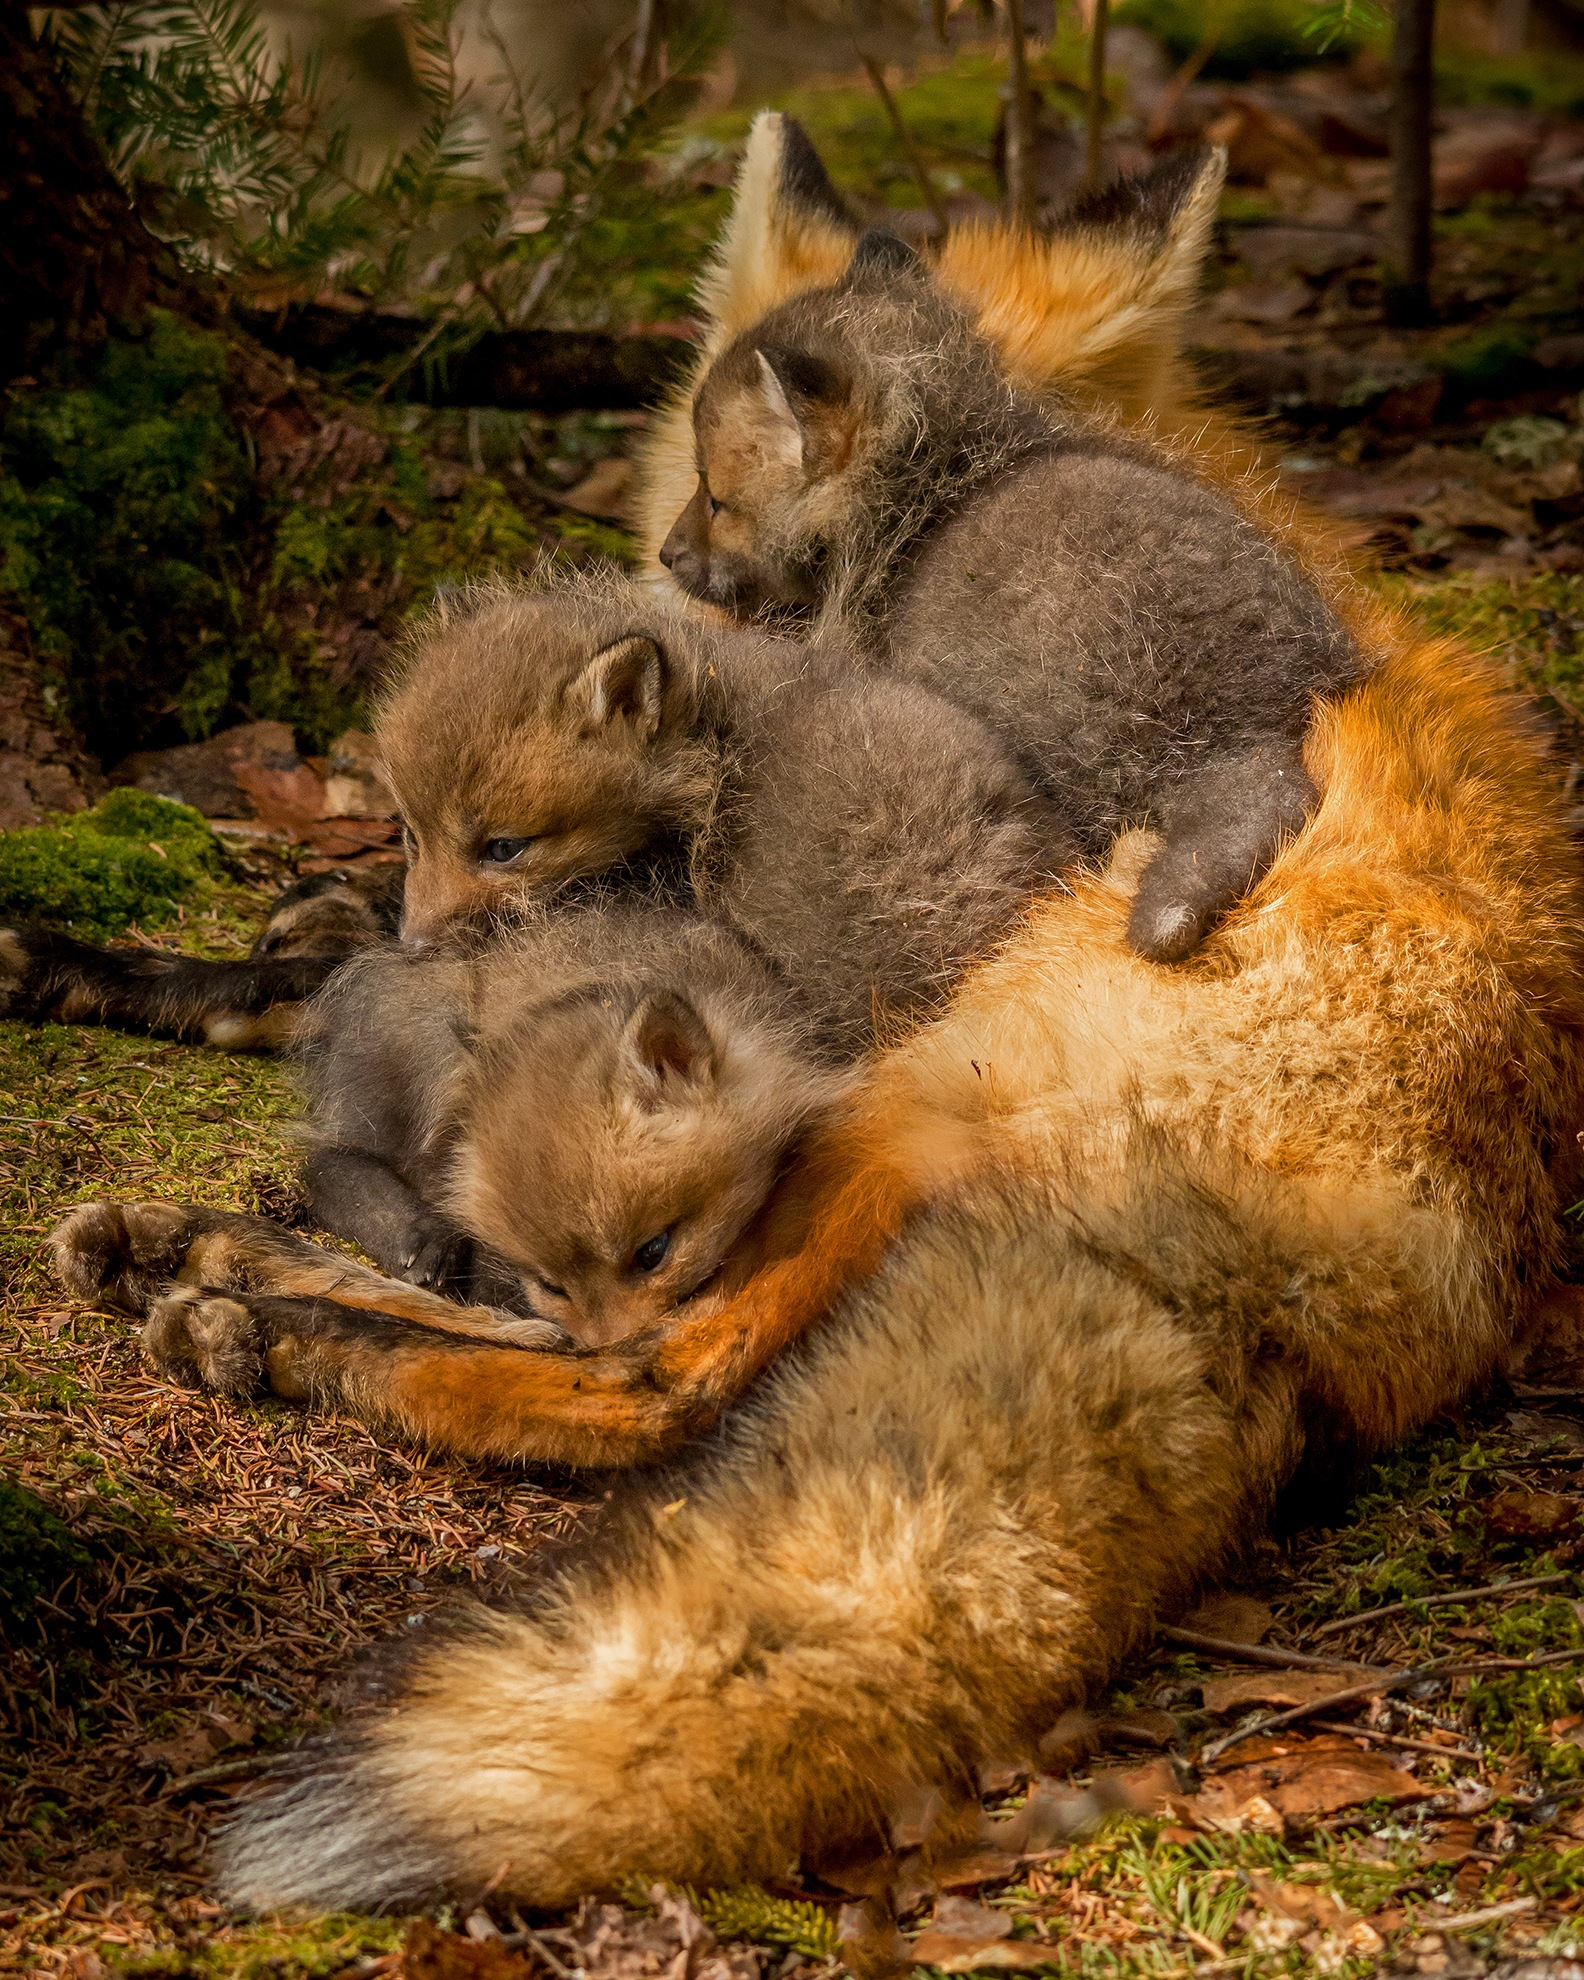 Mother Fox and Kits by Steve Dunsford